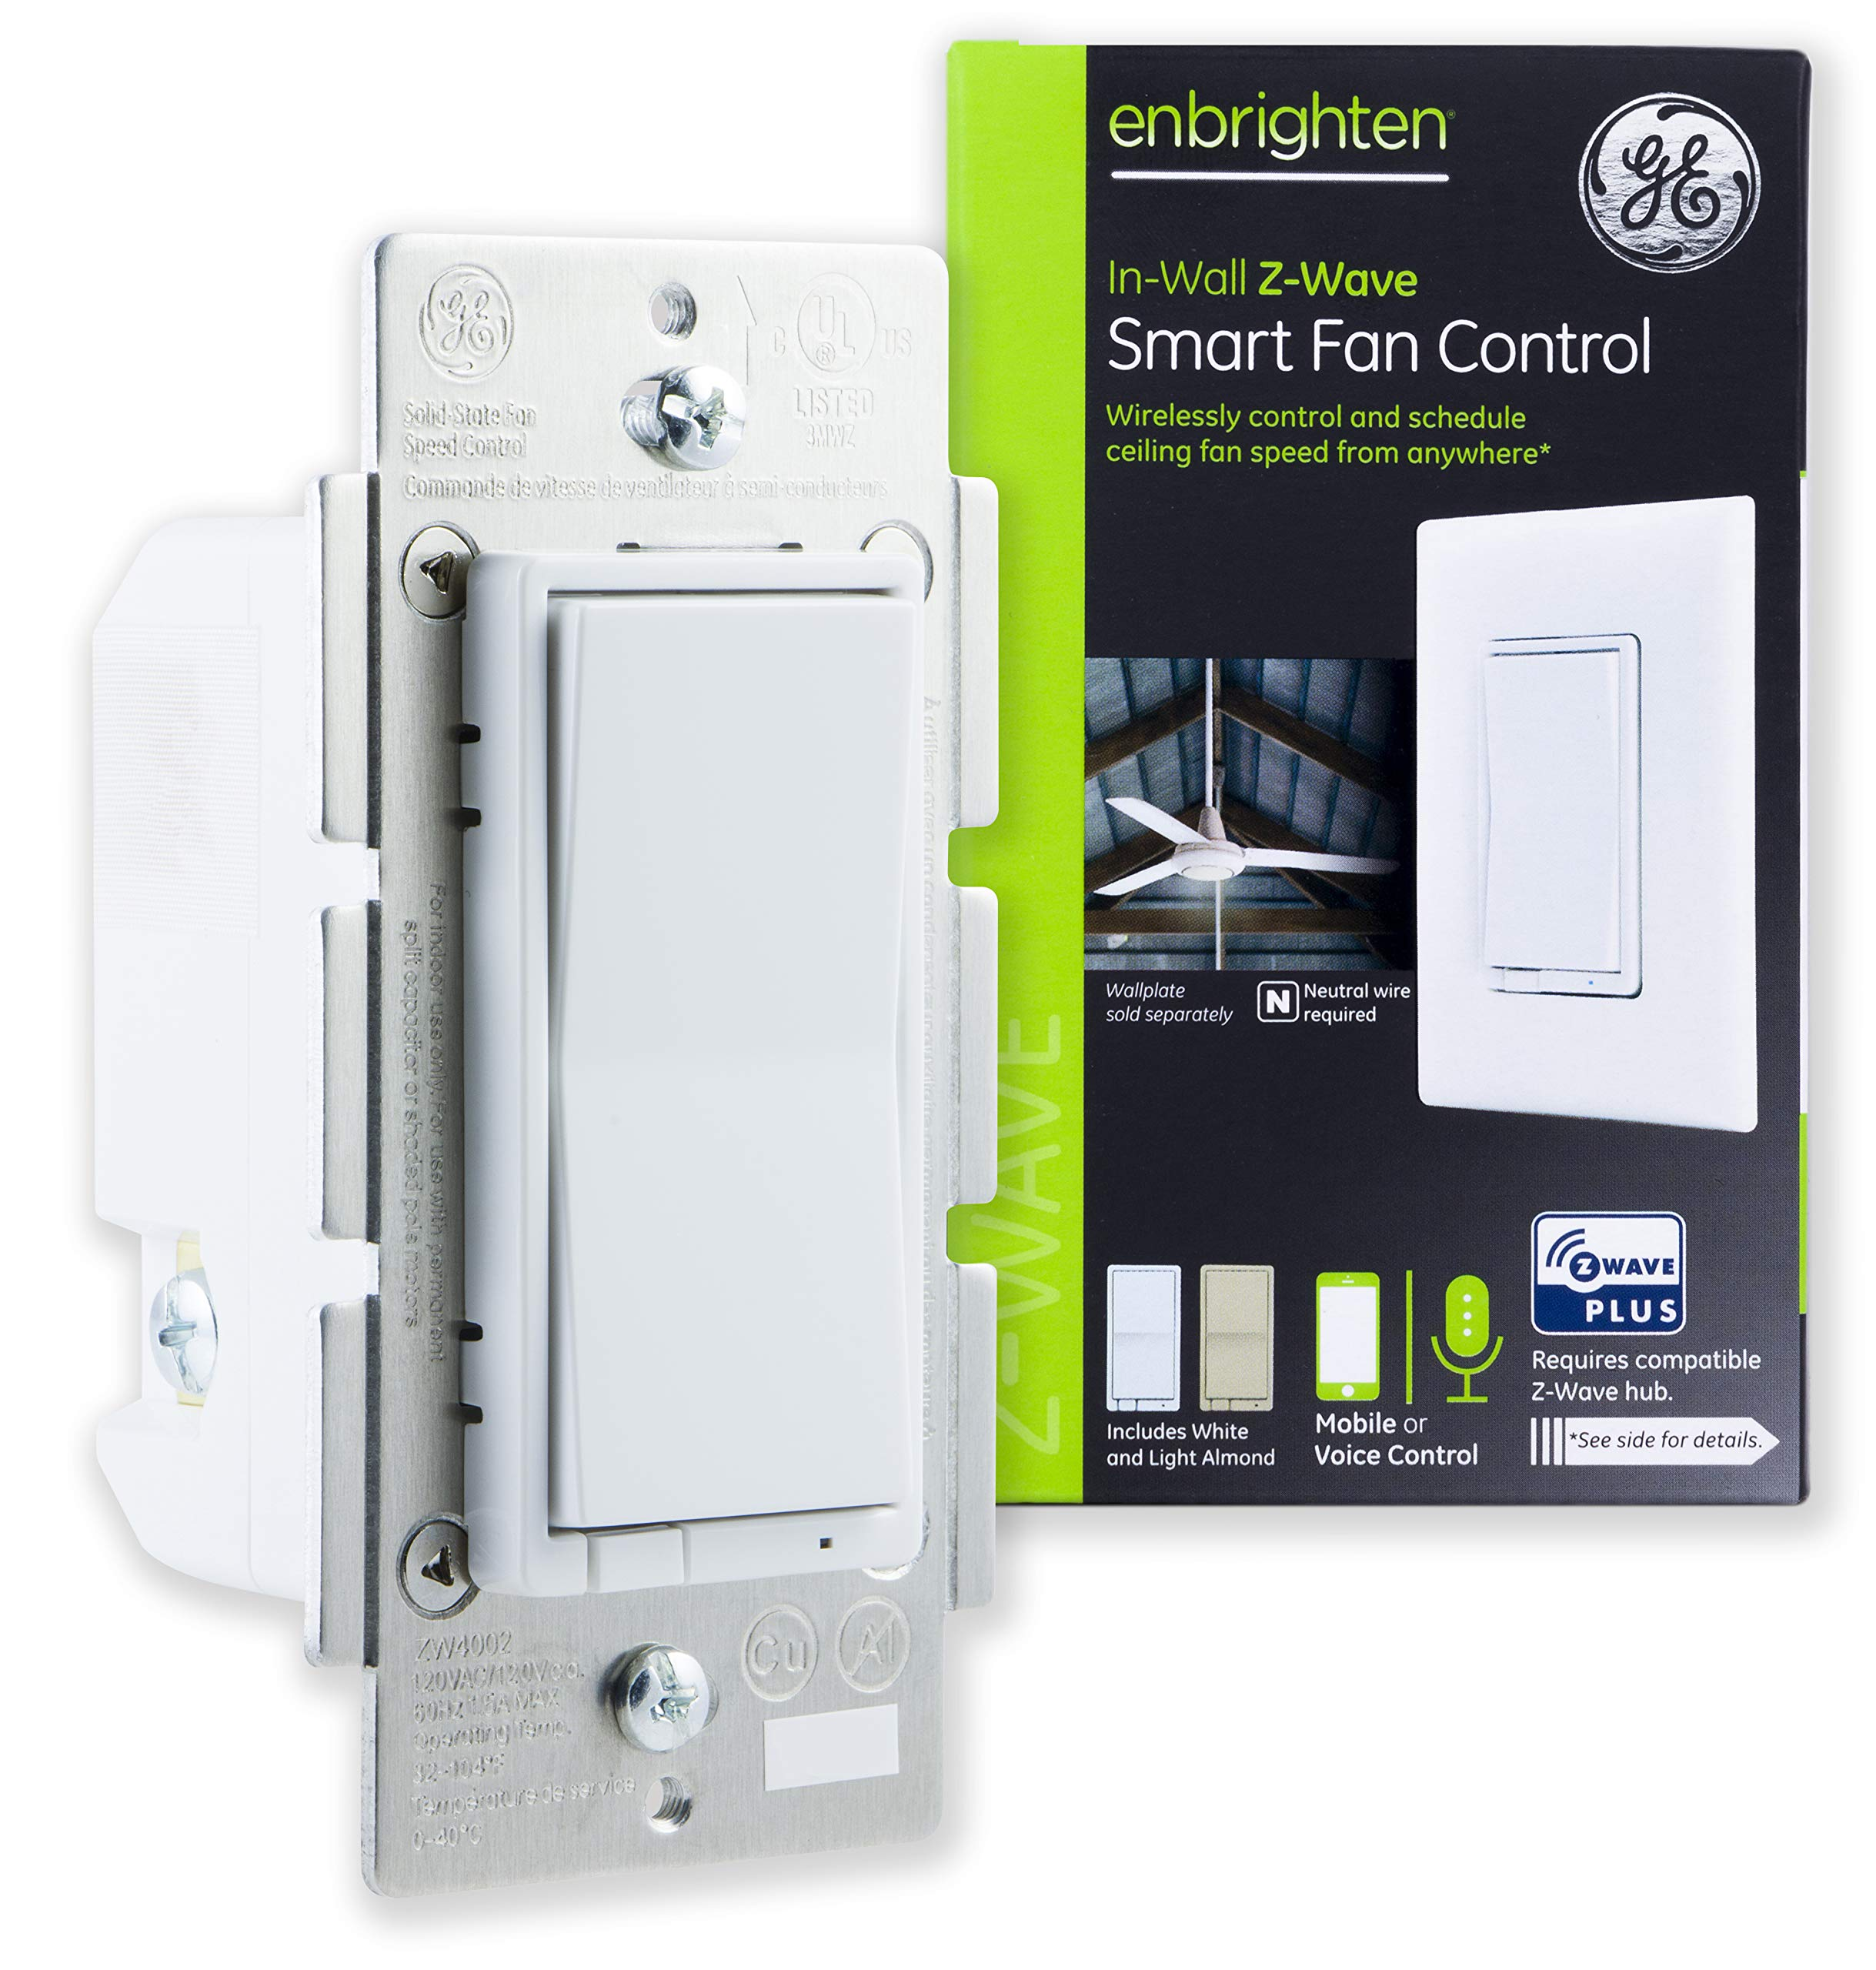 GE Enbrighten Z-Wave Plus Smart Fan Control, Speed ONLY, in-Wall, Includes White & Lt. Almond Paddles, Zwave Hub Required, Works with SmartThings Wink and Alexa, 14287